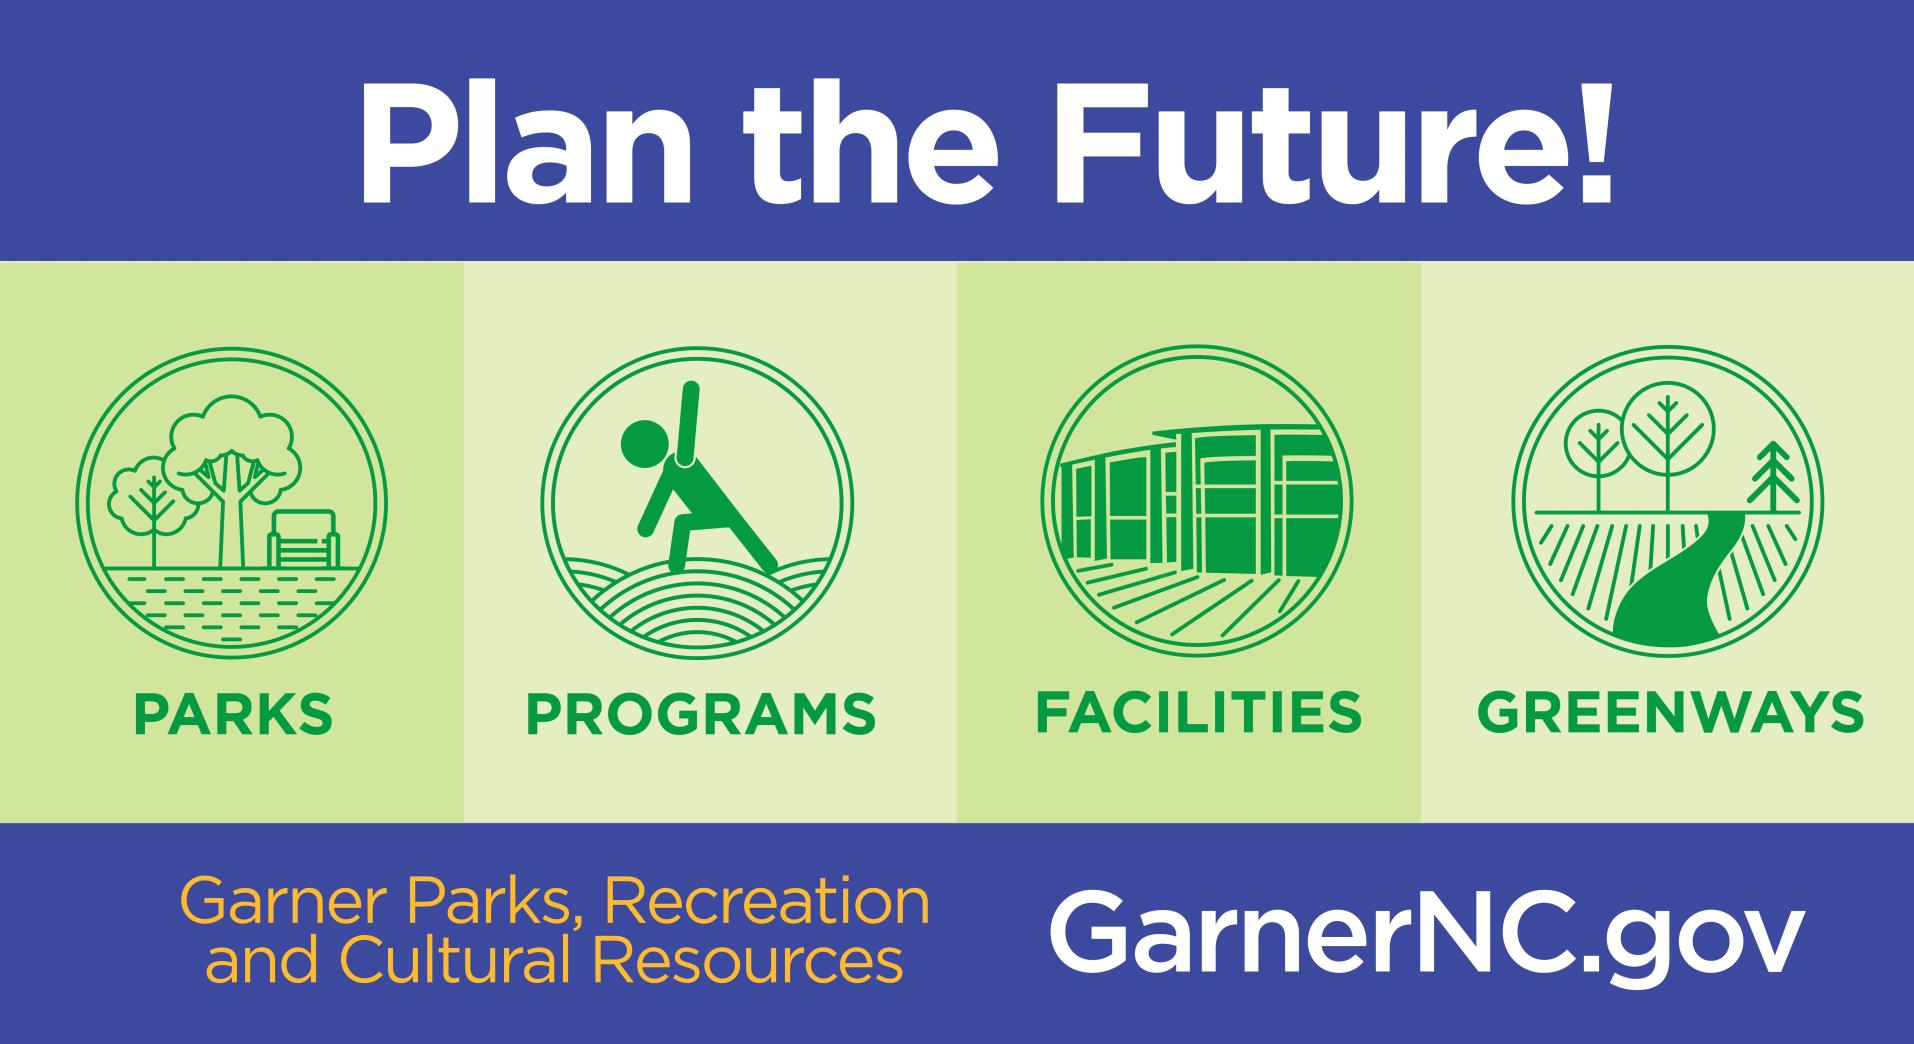 Plan the Future Magnet